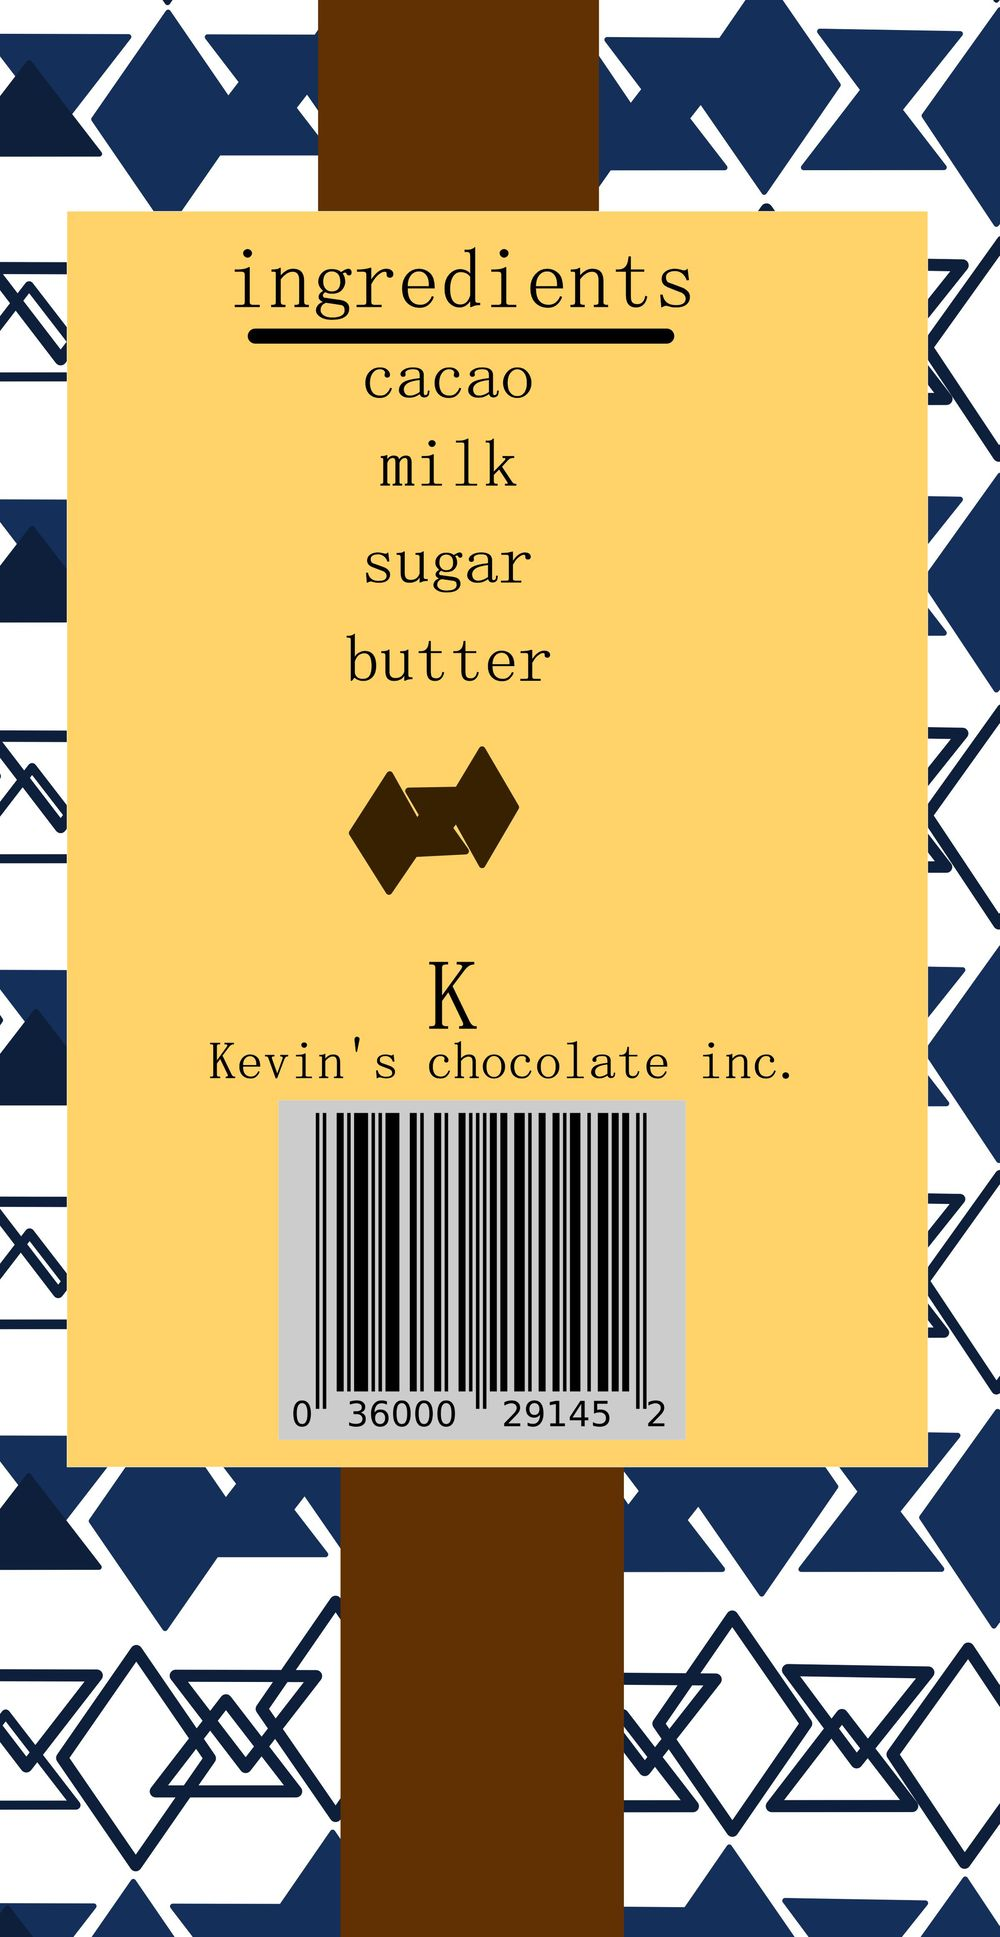 chocolate bar Packaging - image 2 - student project